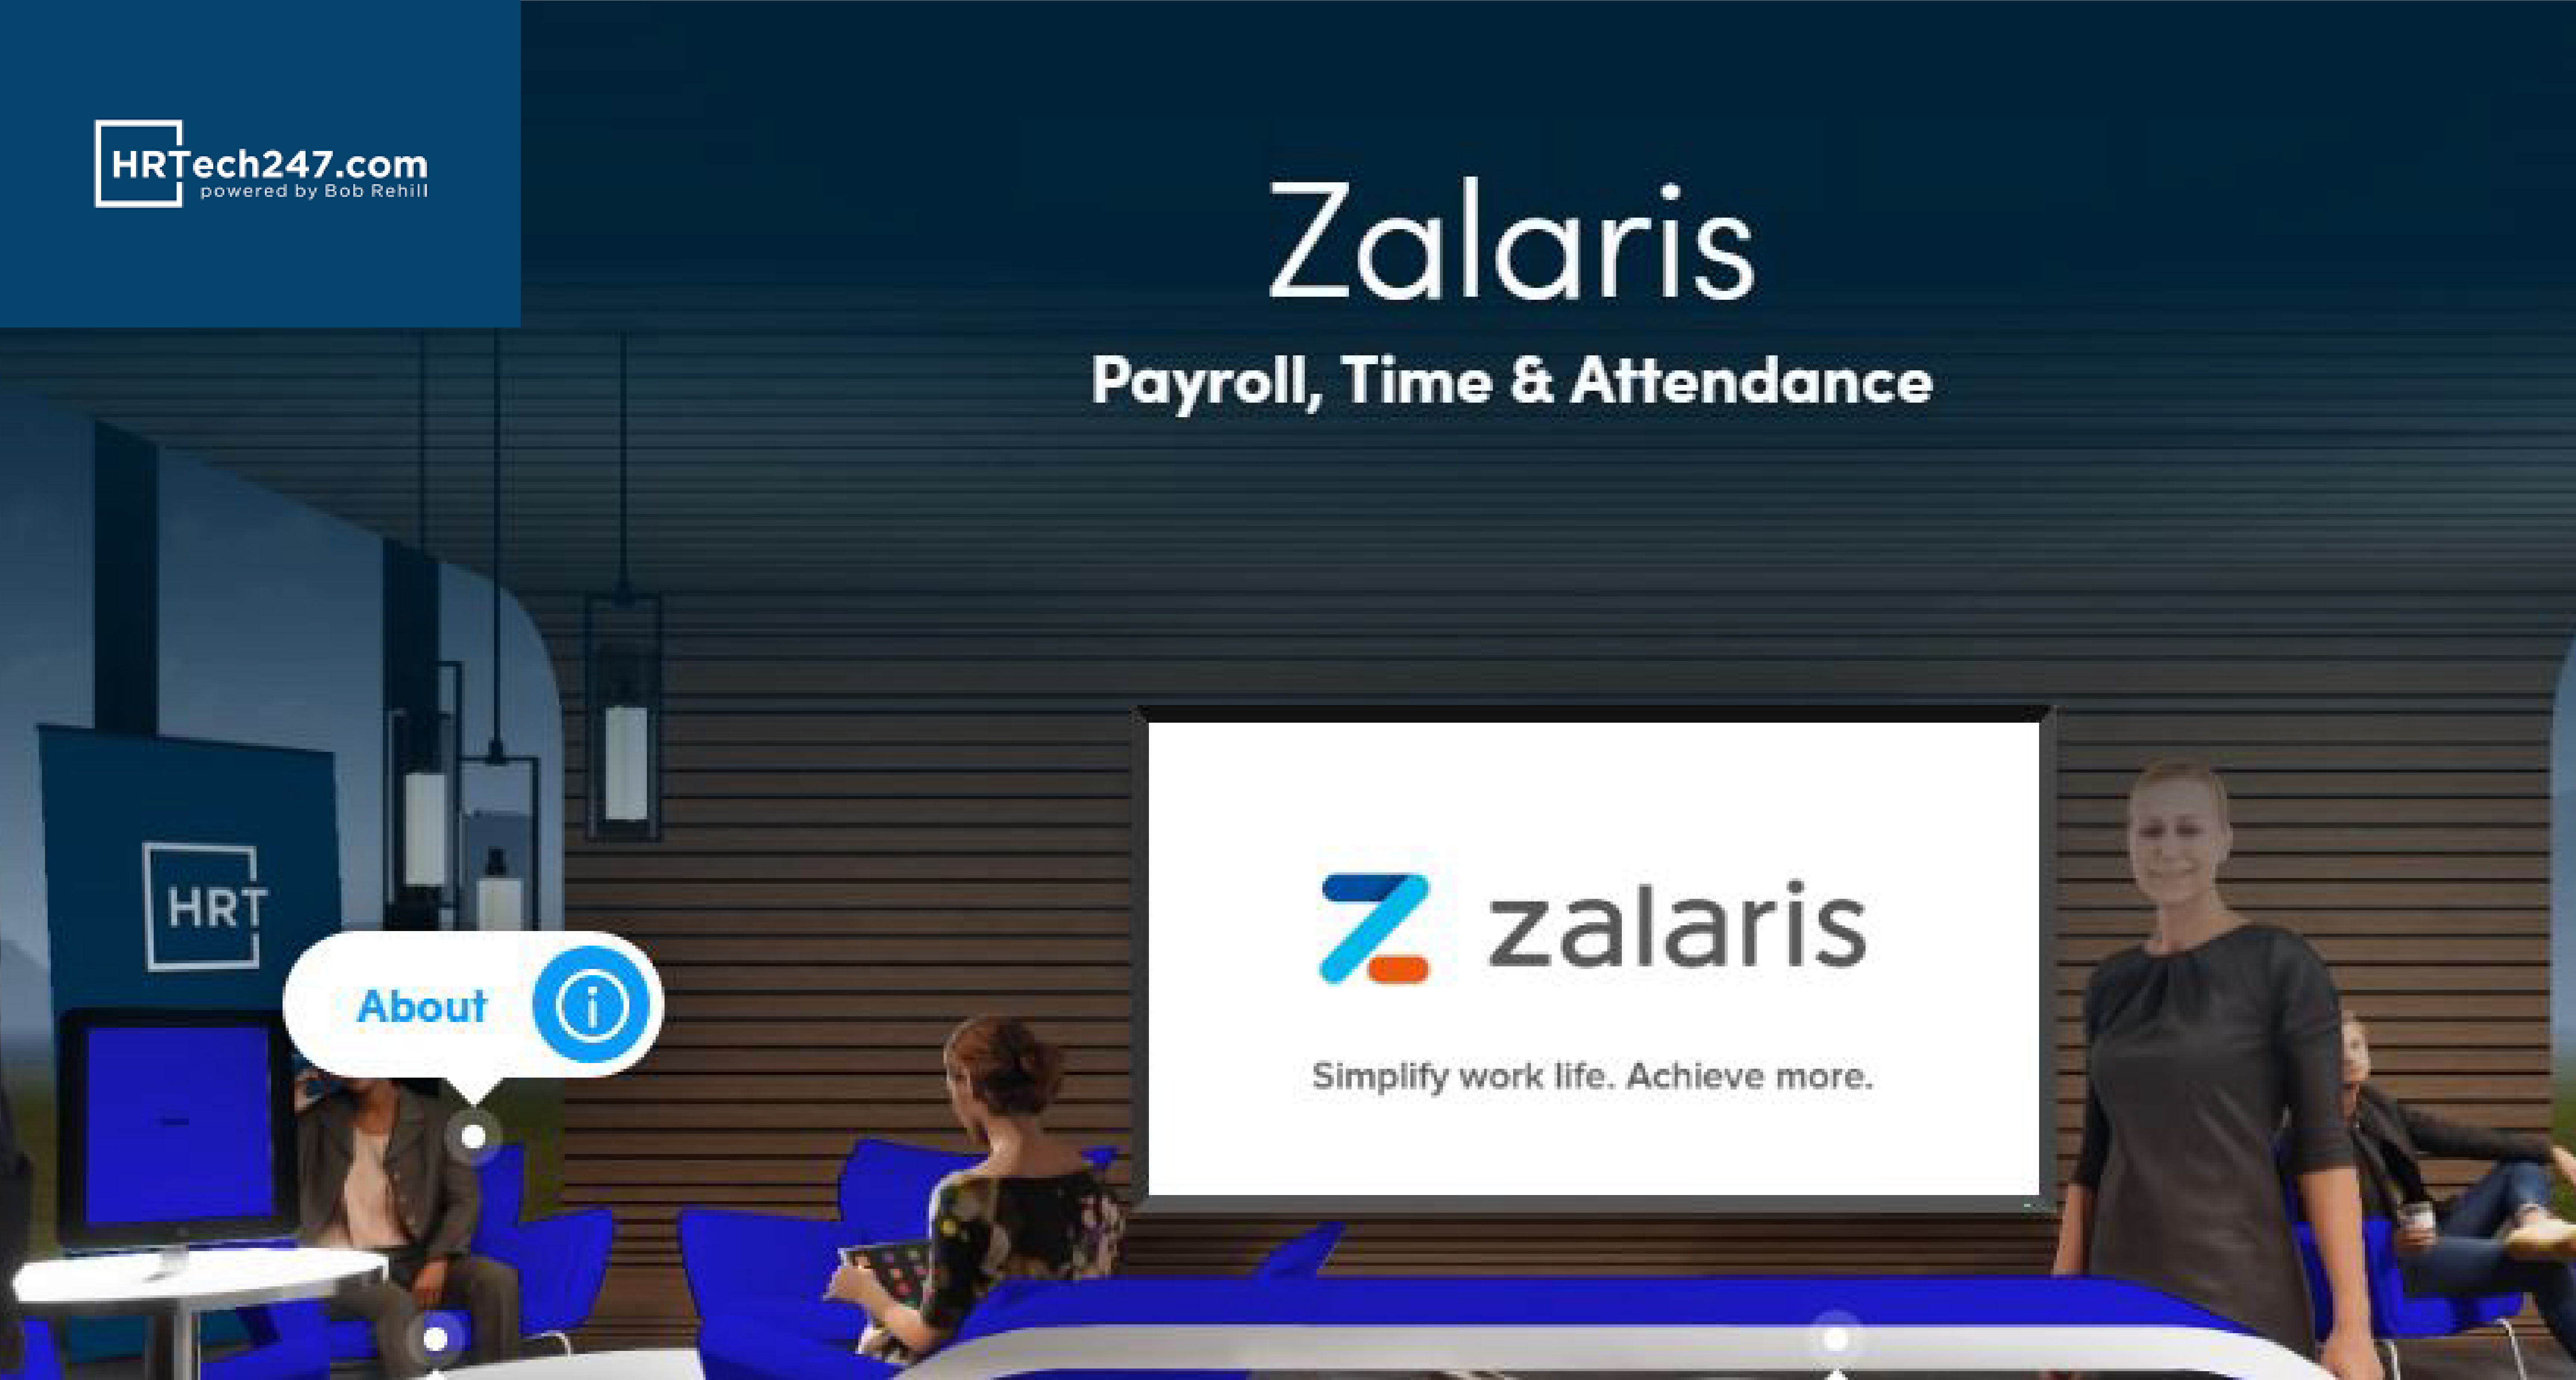 Zalaris launches their SAP partner stand on HRTech247